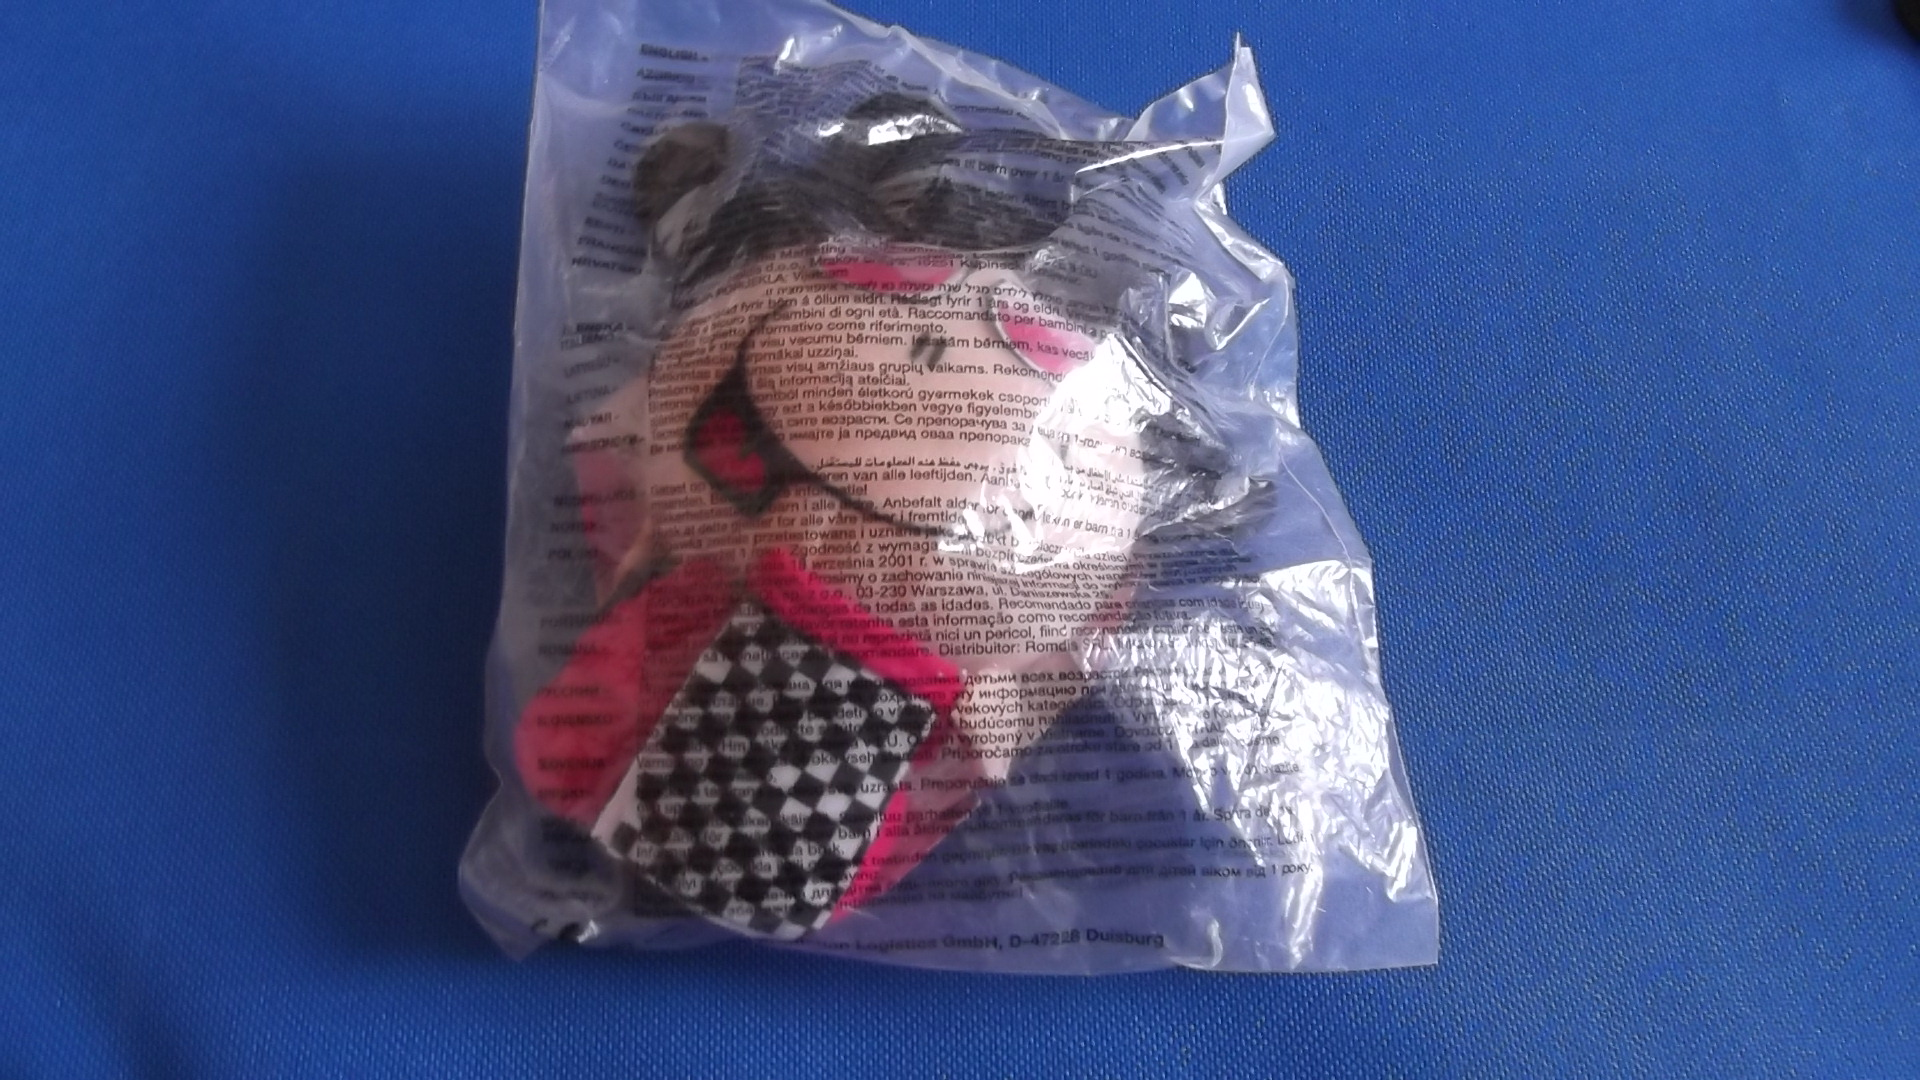 McDonalds Bubblegum Go Girl Toy From 2003 New